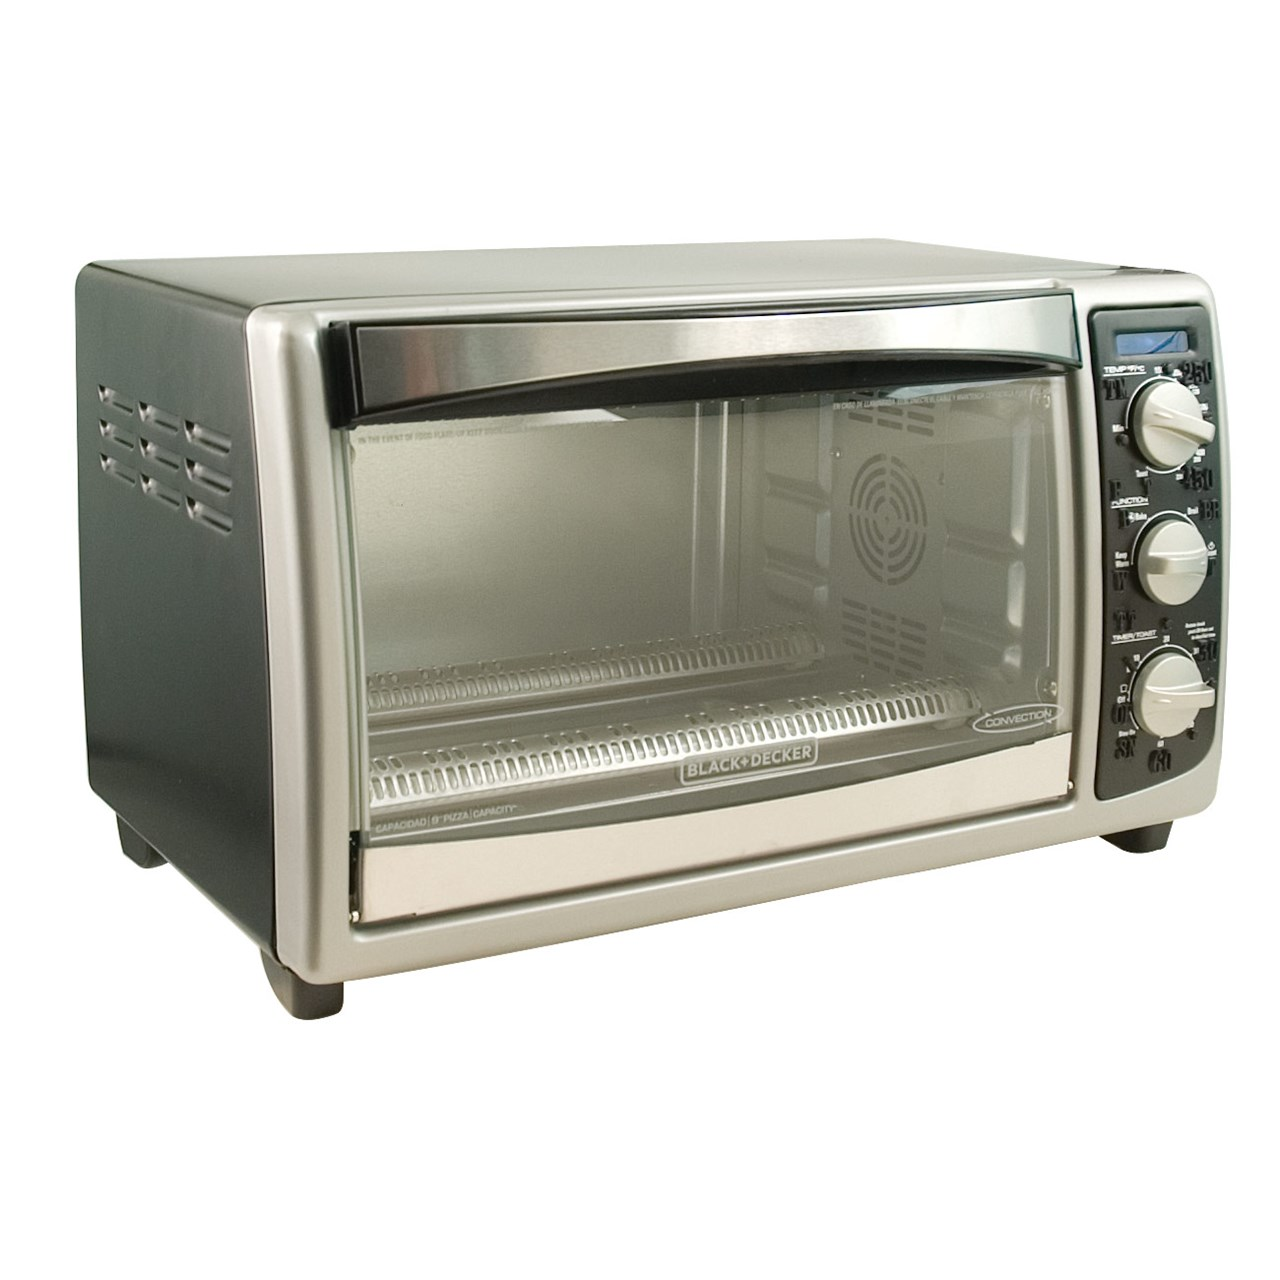 HOUSEHOLD / Tactile Convection Countertop Toaster Oven - Black